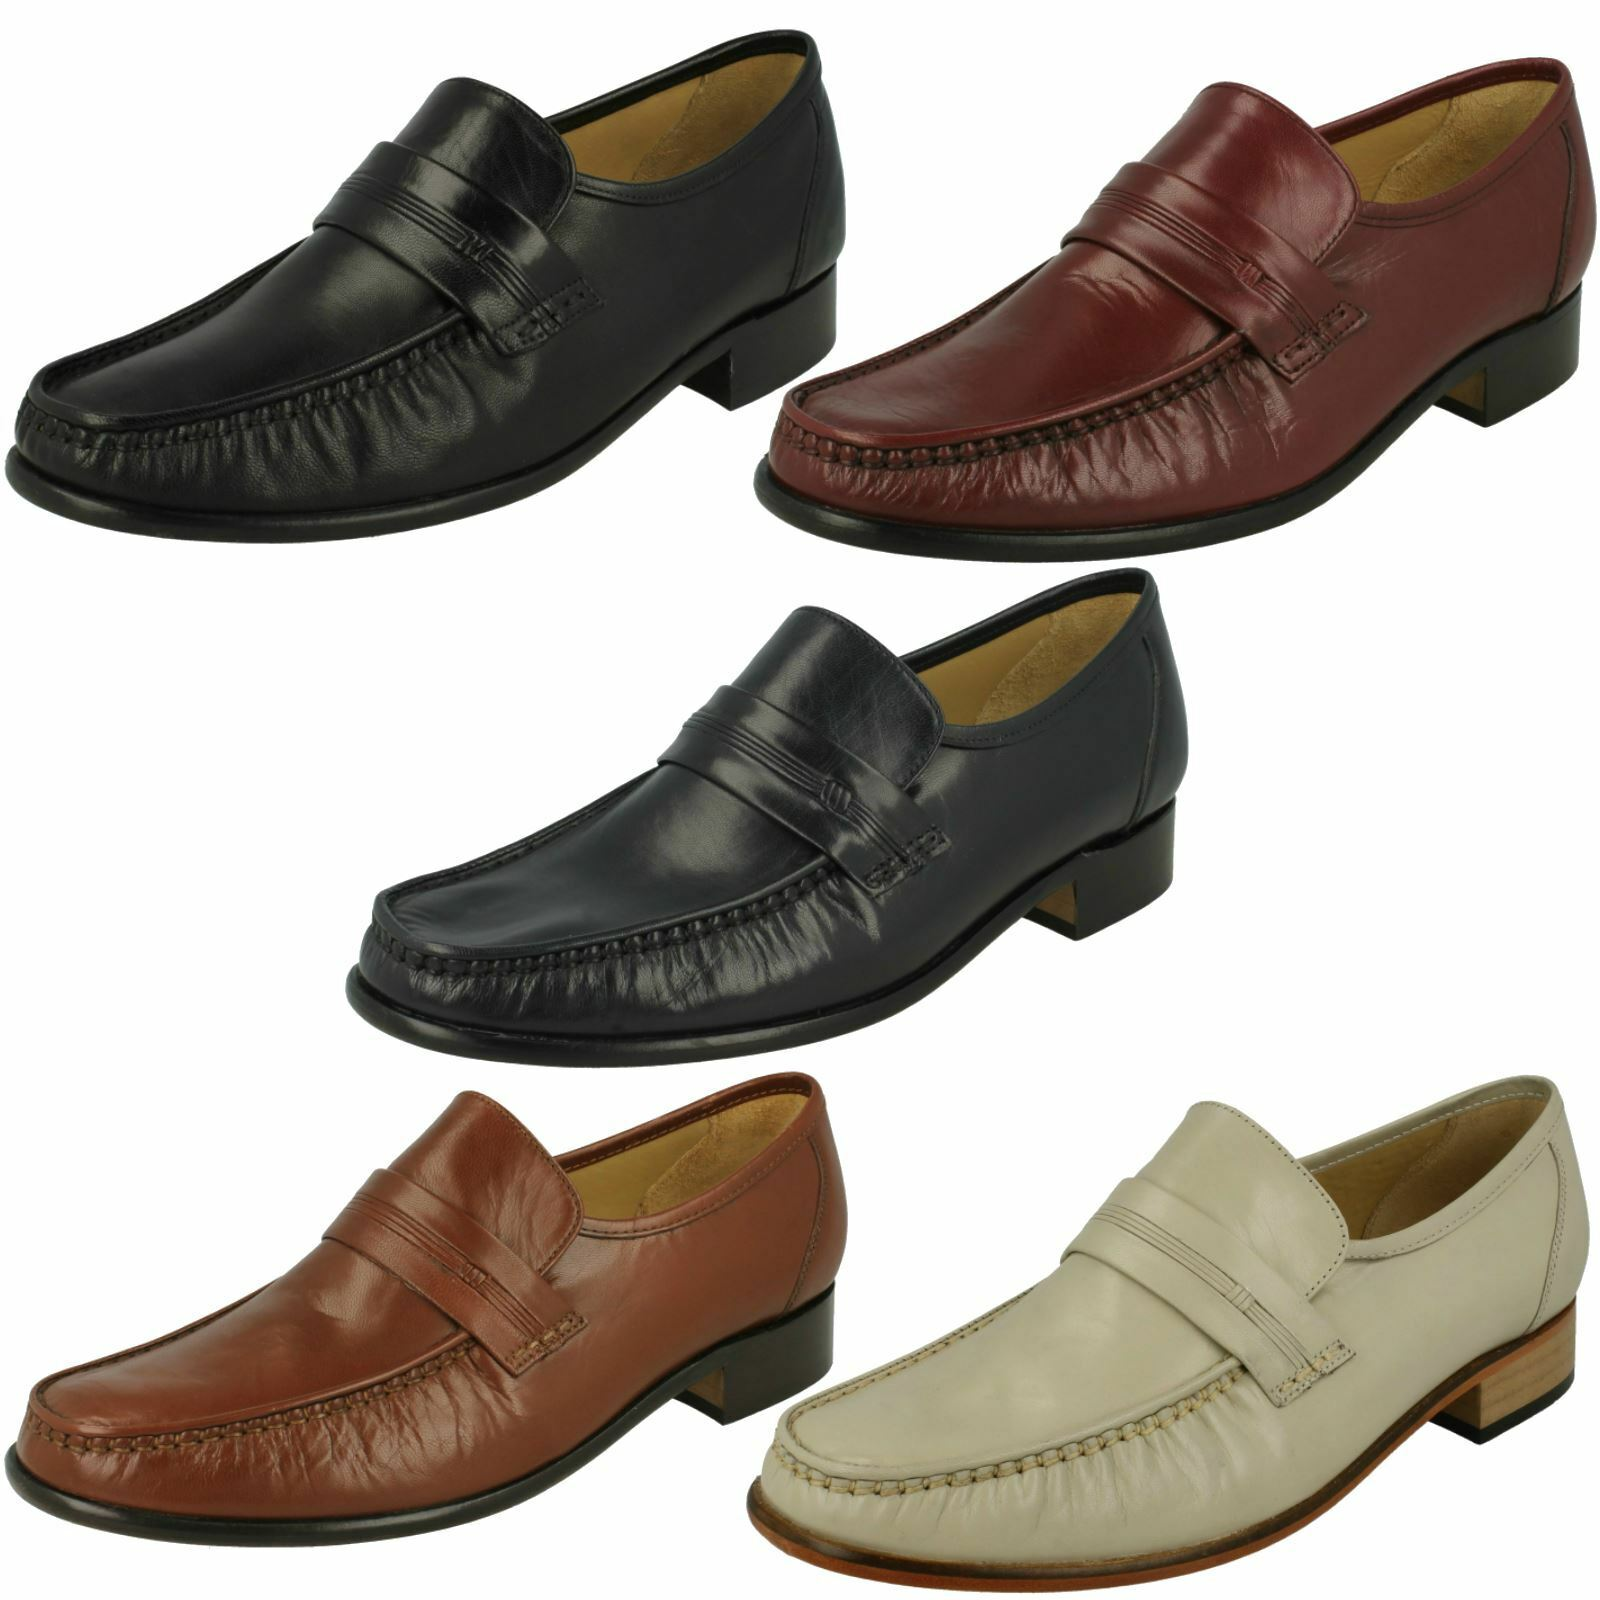 Mens Thomas Blunt Moccasin Formal Shoes 'Clapham' 2